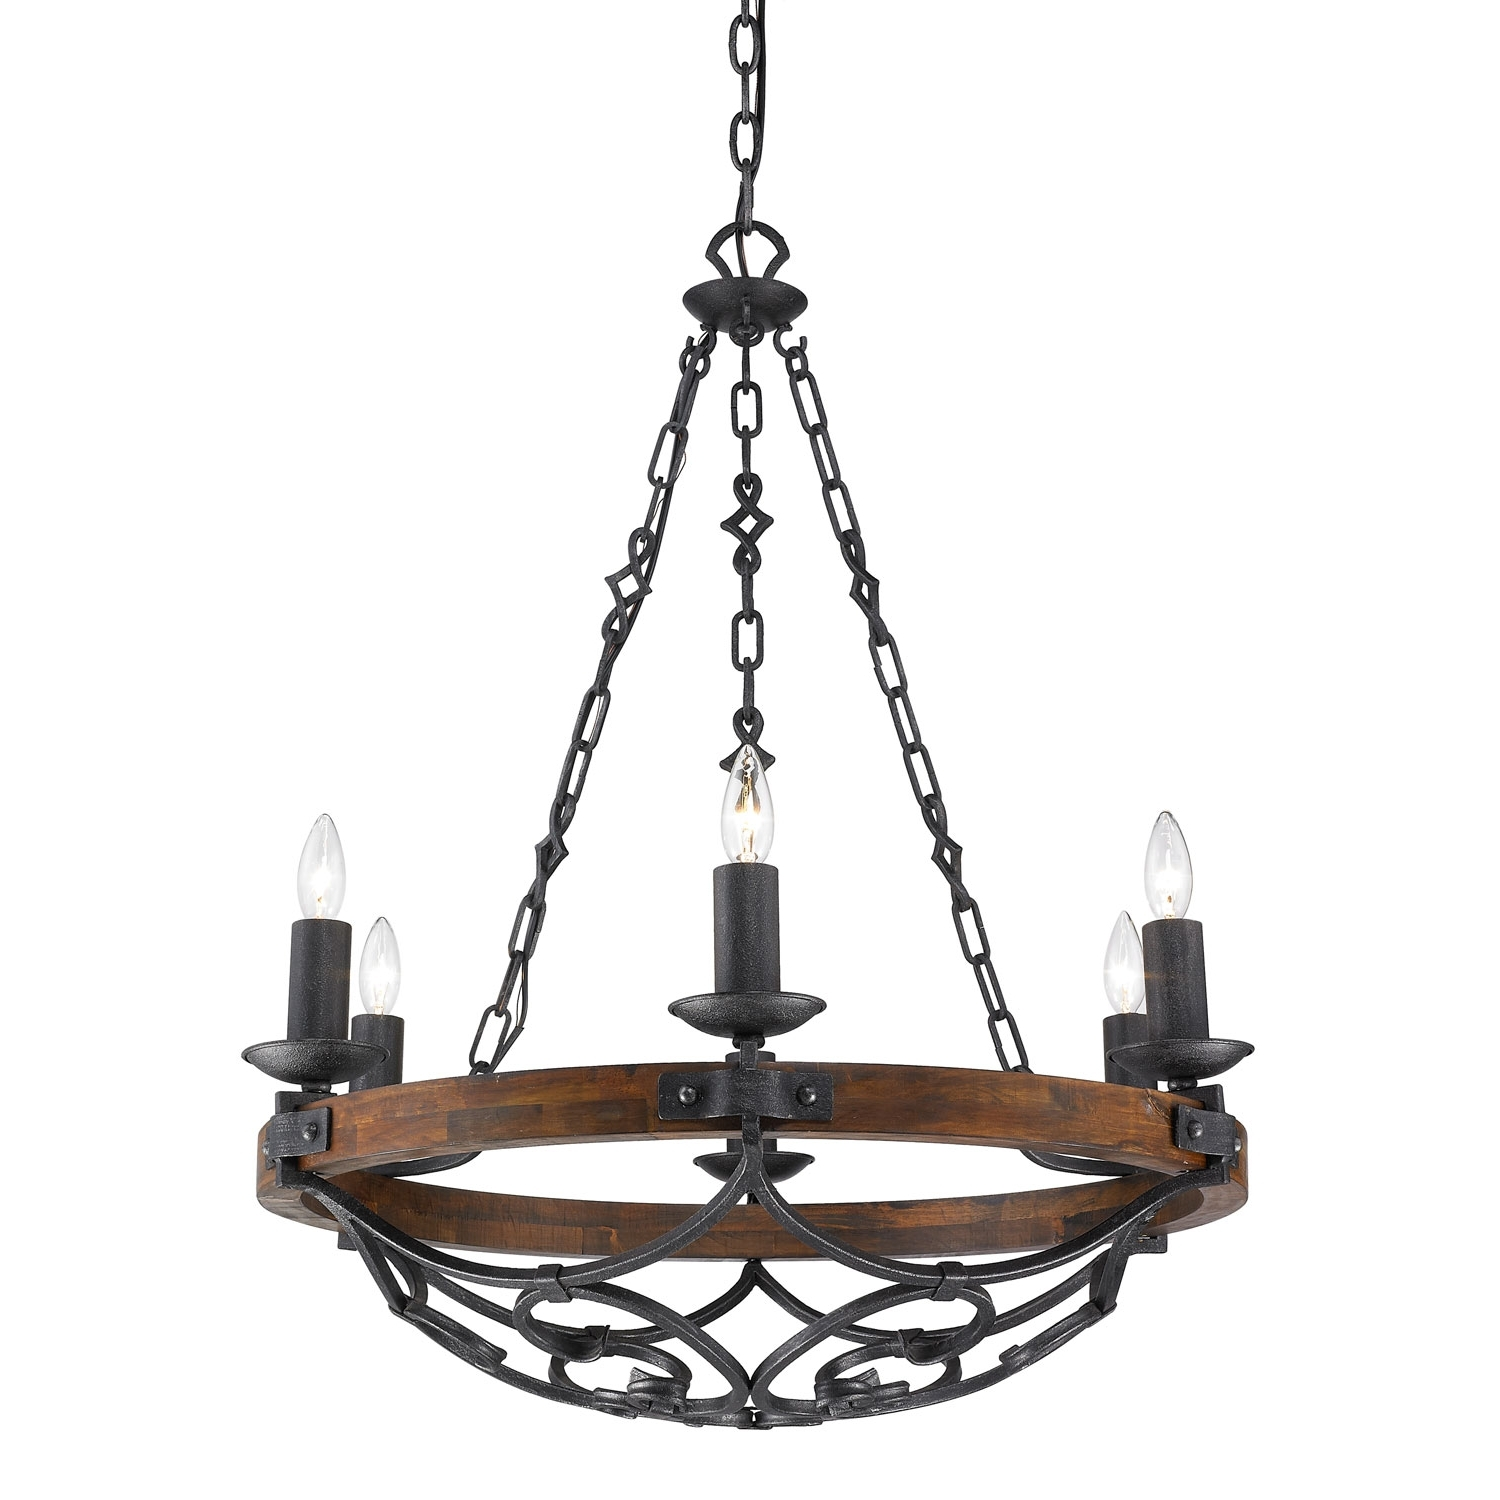 Newest Old World Chandeliers, Kitchen Chandeliers From Bellacor In Black Iron Chandeliers (View 17 of 20)